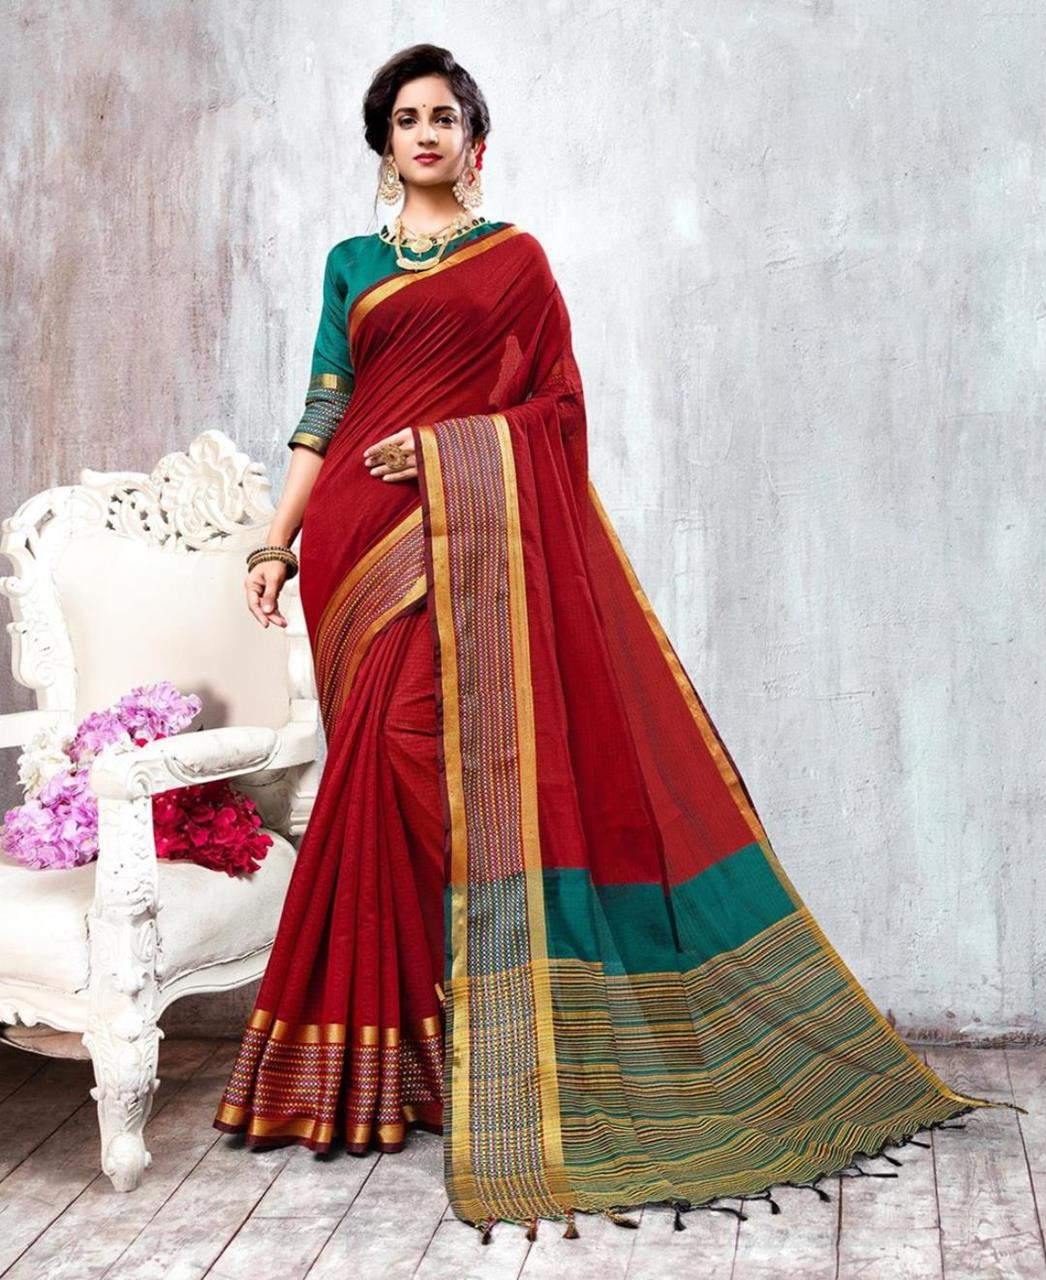 Woven Cotton Saree (Sari) in Red